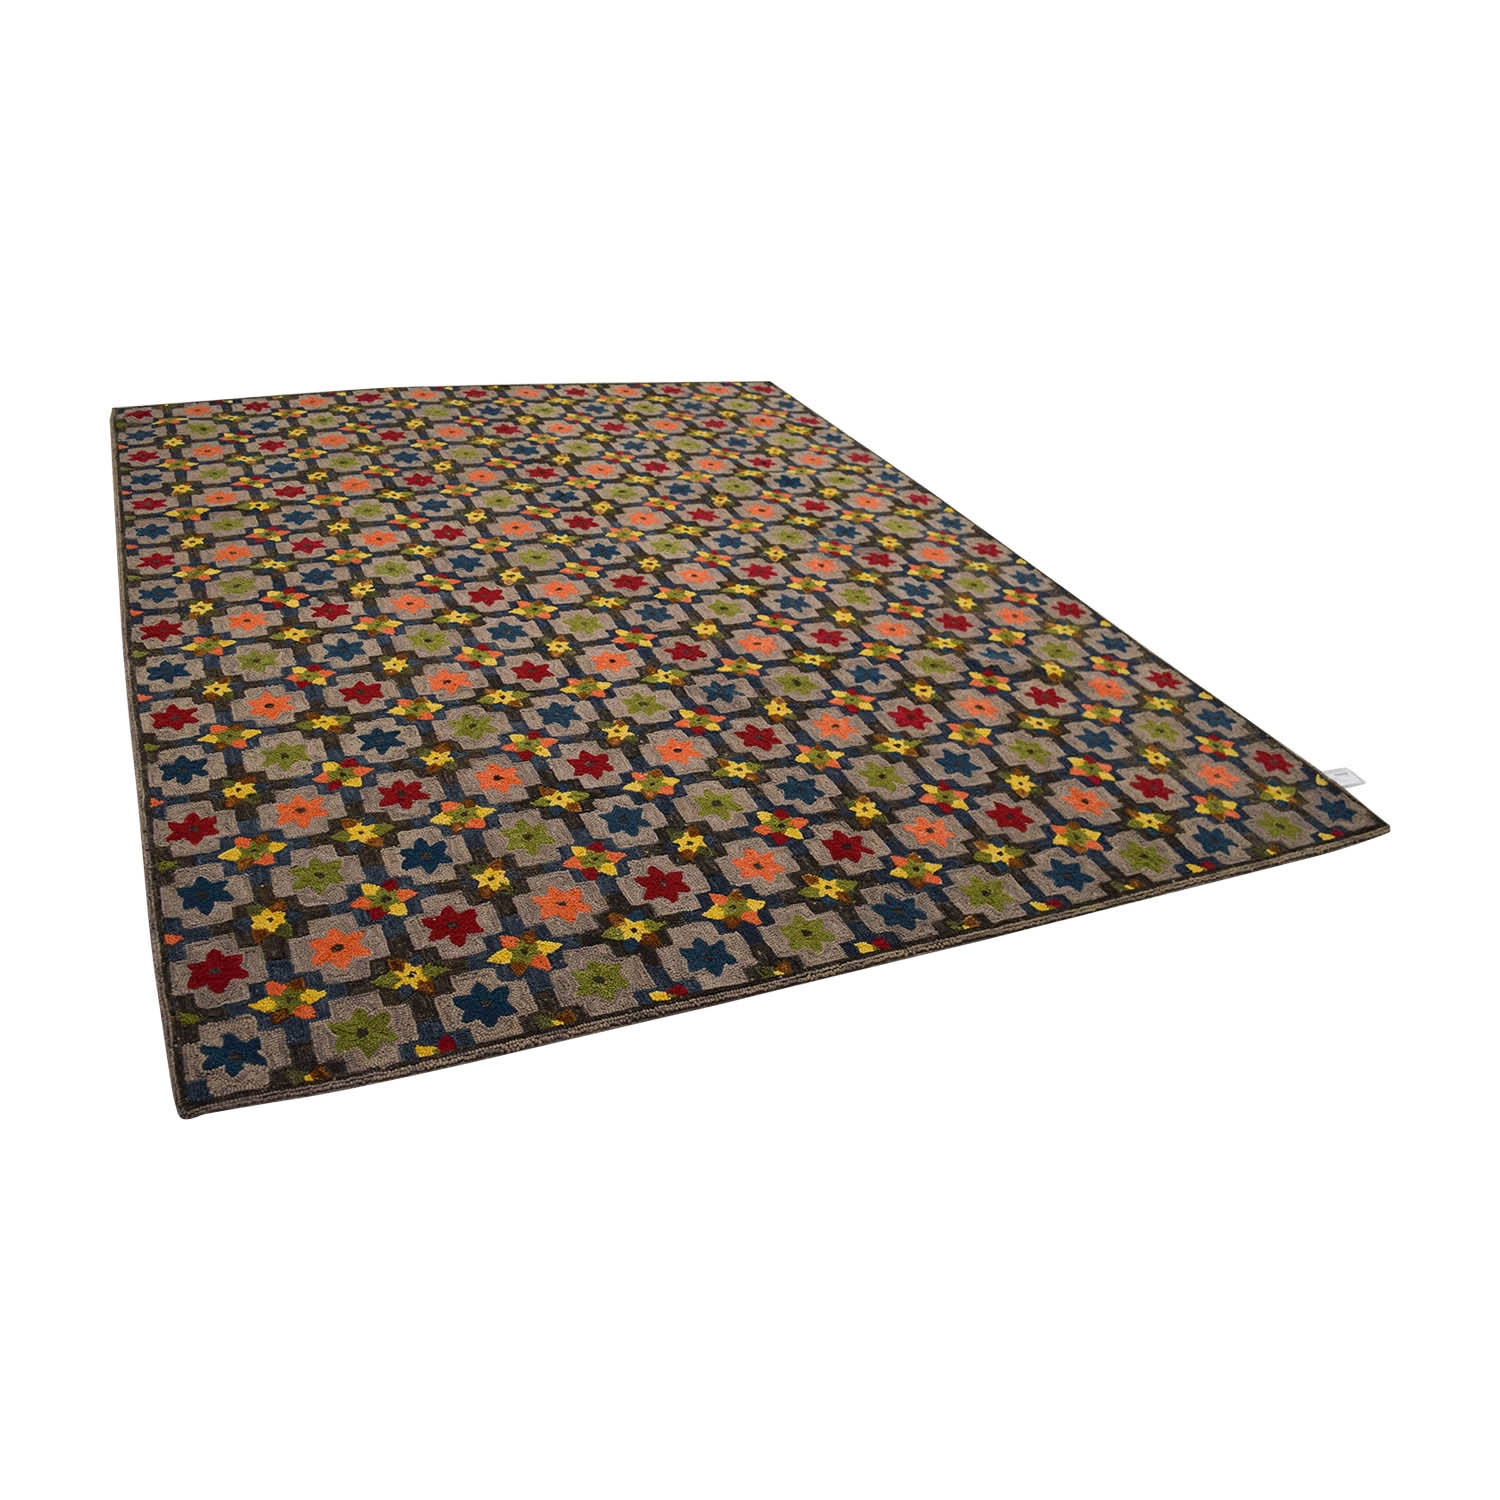 Obeetee Obeetee Hand Hooked Multi Colored Floral Rug price